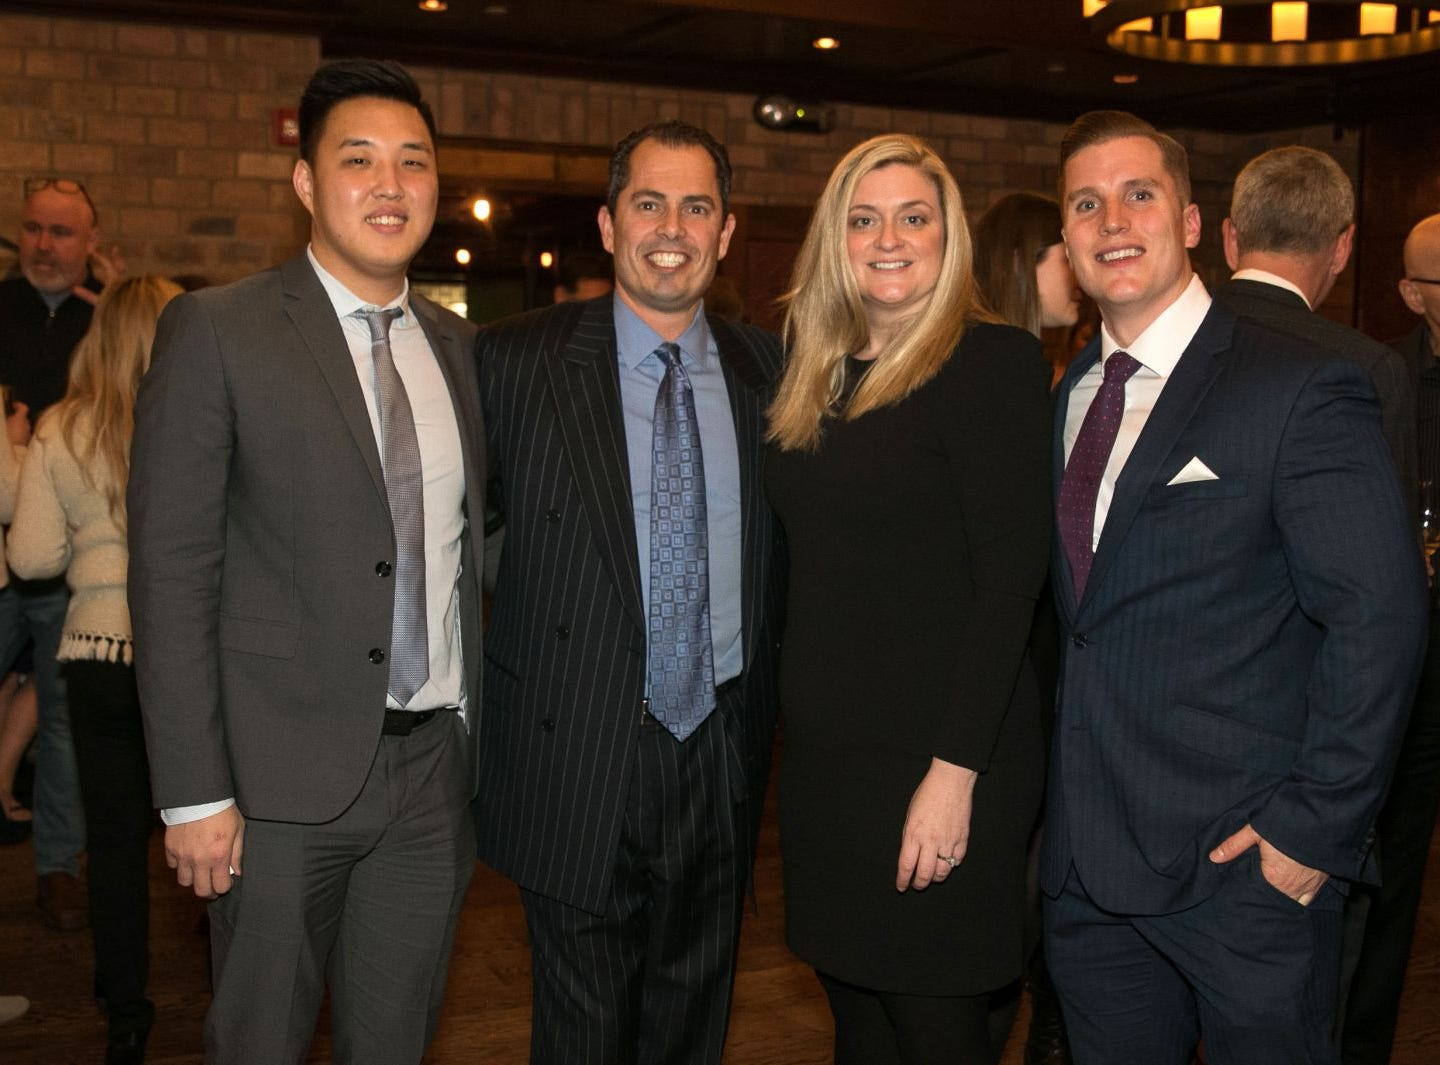 Min Kim, Pat Grande, Christina Gibbons, Bryan Struk. Christina Gibbons of Special Properties held a cocktail reception to acknowledge her clients at Roots Steakhouse in Ridgewood. 02/07/2019